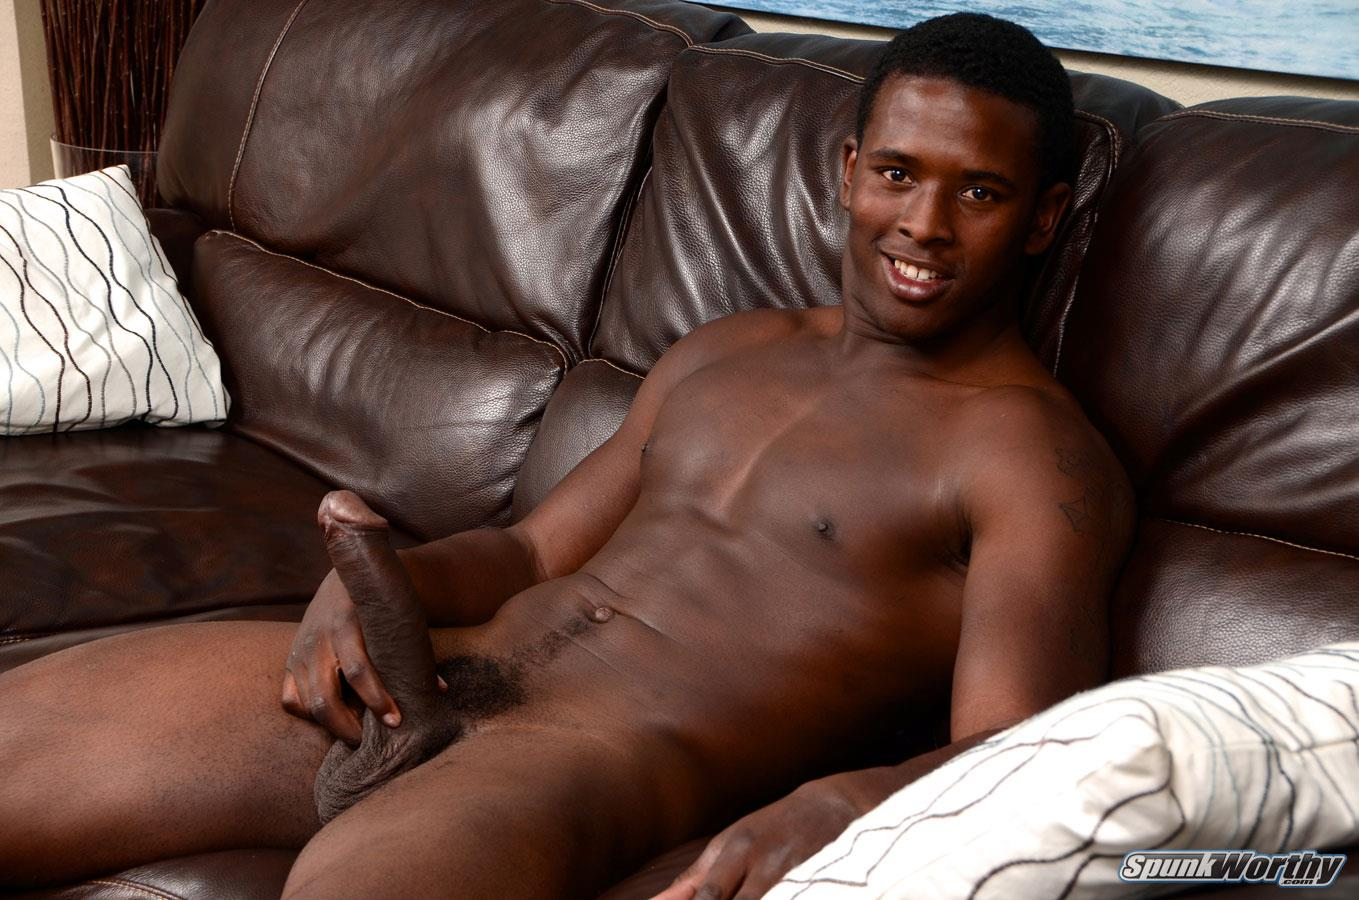 SpunkWorthy-Heath-Naked-College-Football-Player-Stroking-His-Big-Black-Cock-Amateur-Gay-Porn-05 Straight College Football Player Jerking His Big Uncut Black Cock